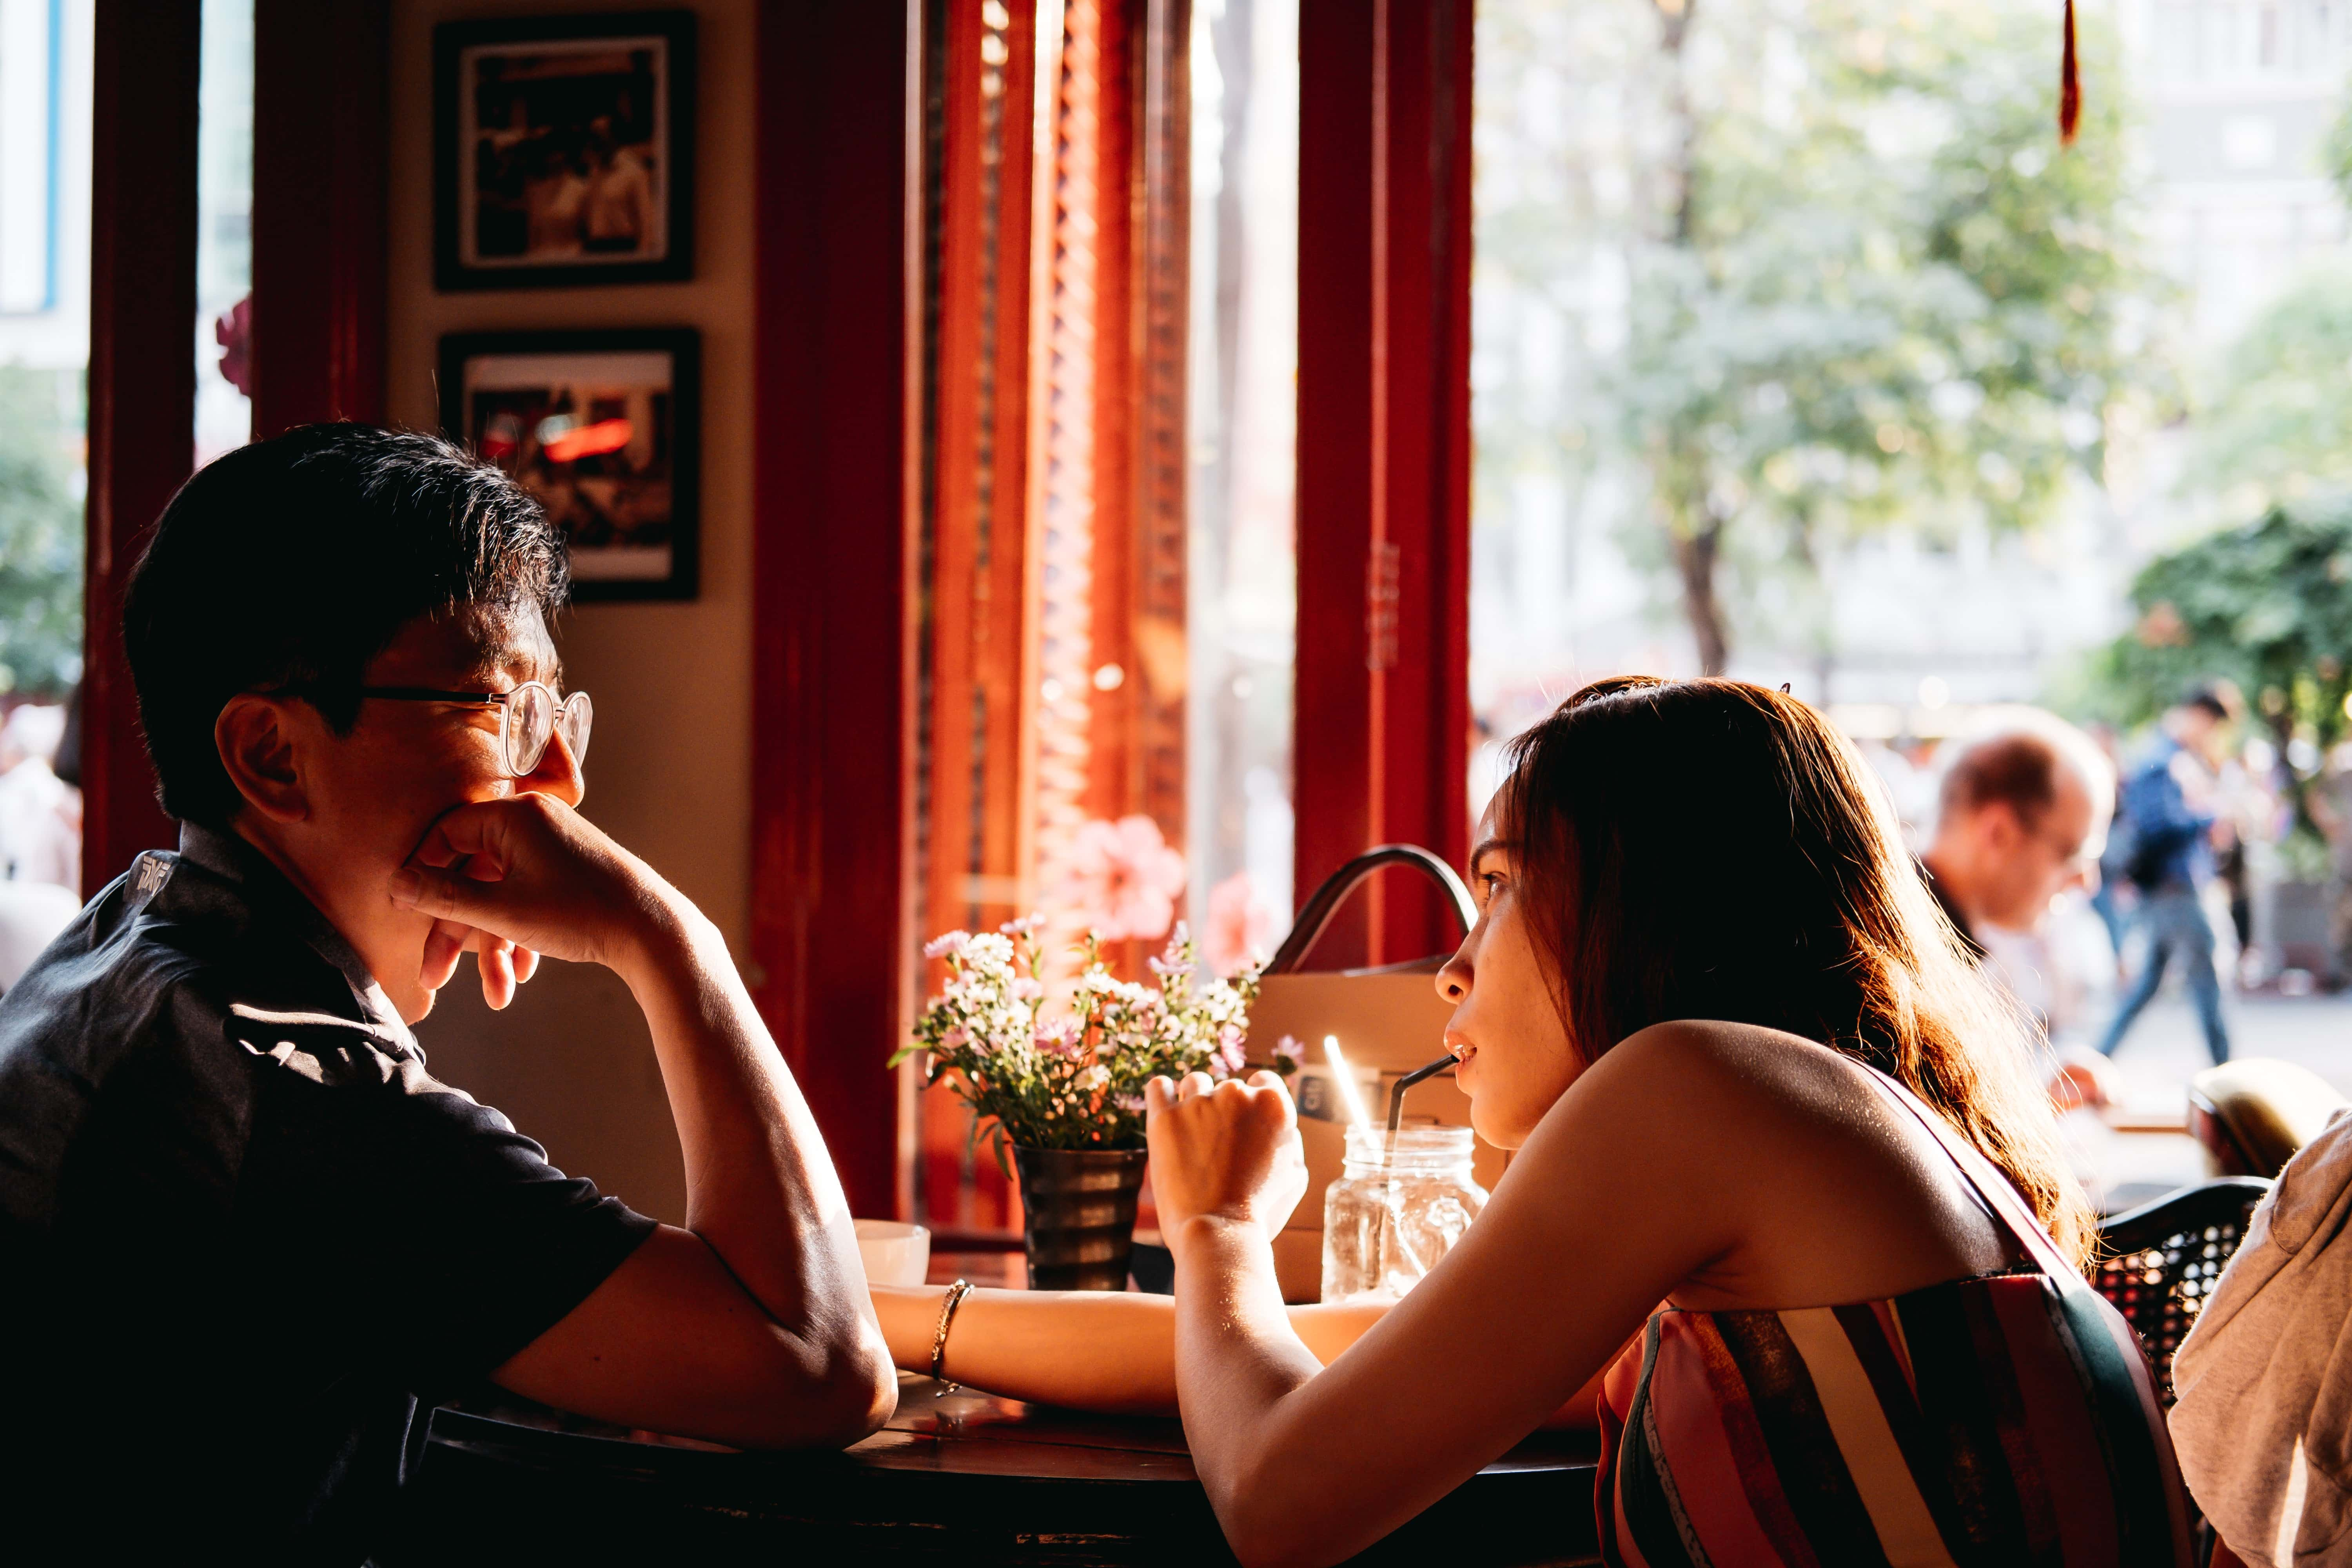 The Dutch Date: It's time men stopped paying for their dates